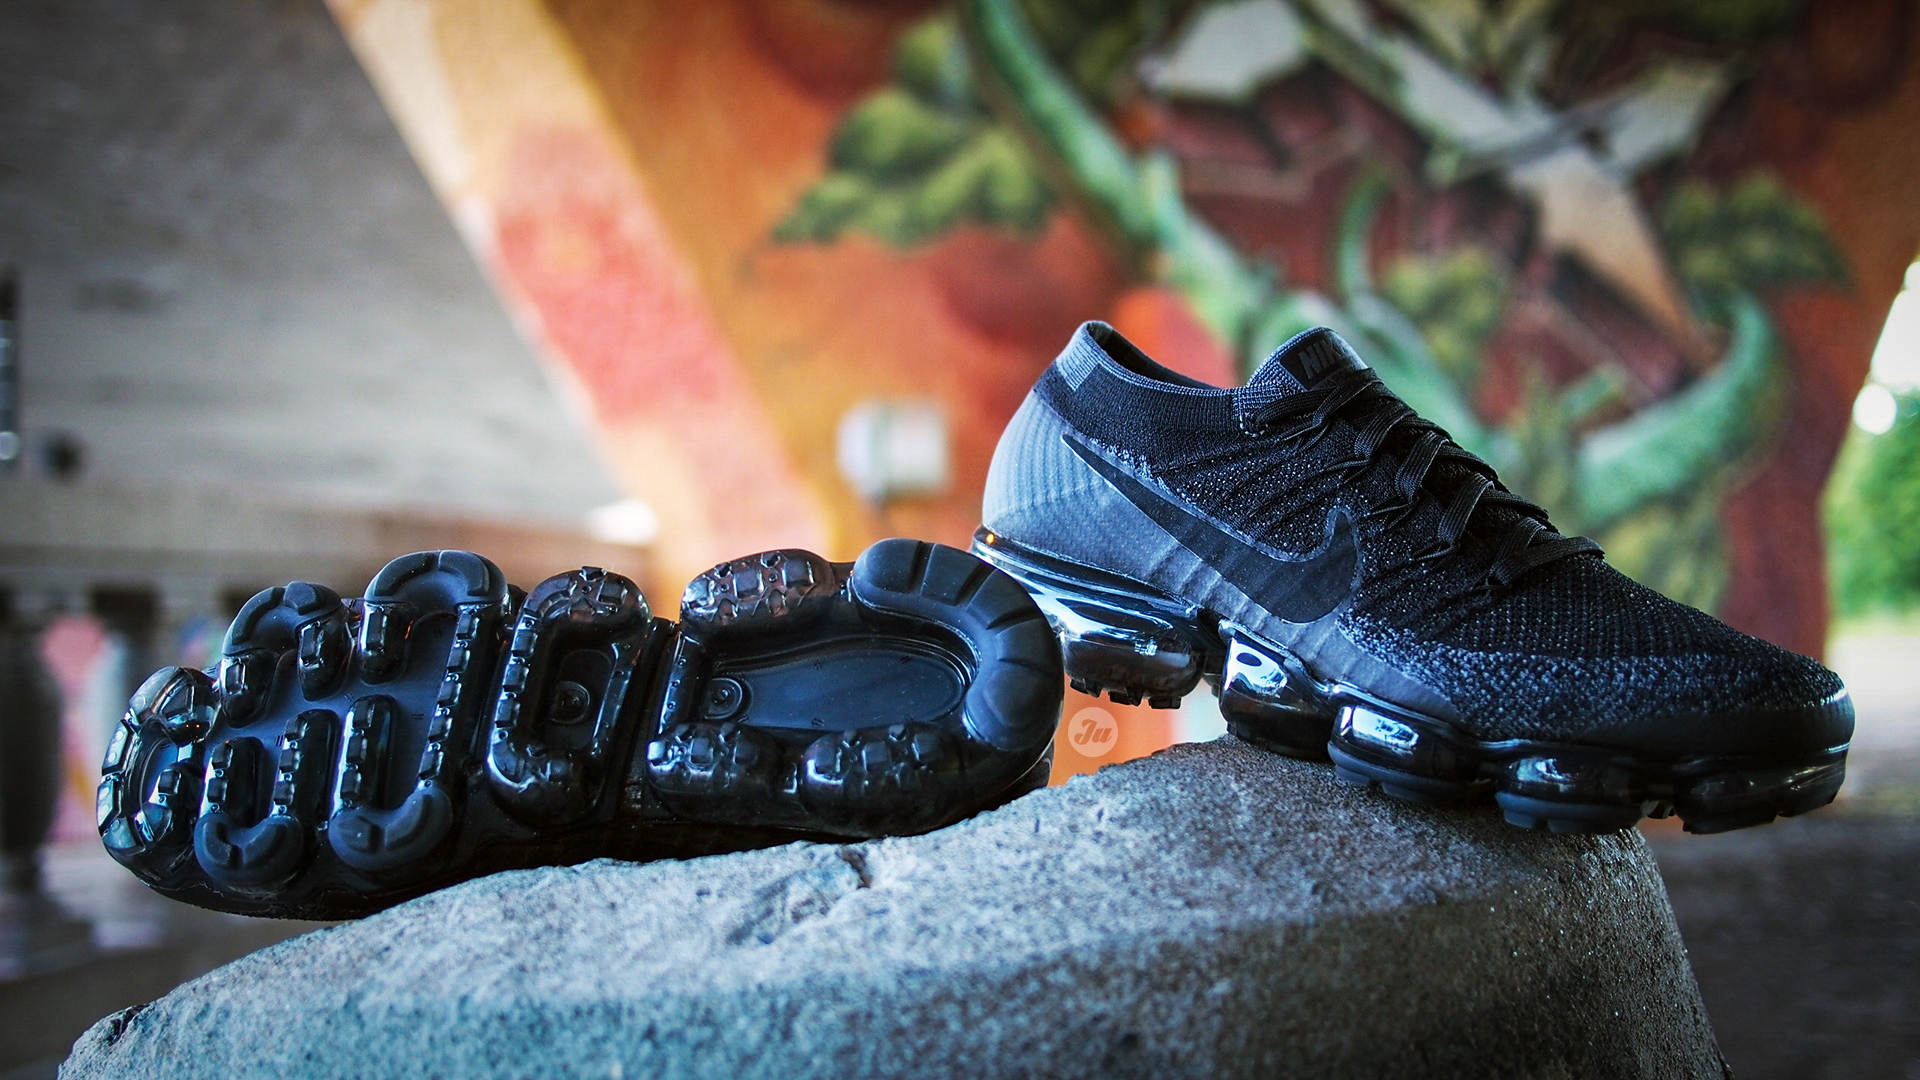 6ca13a1f08b8 Nike Air VaporMax - an update   review on my new go-to comfortable sneakers